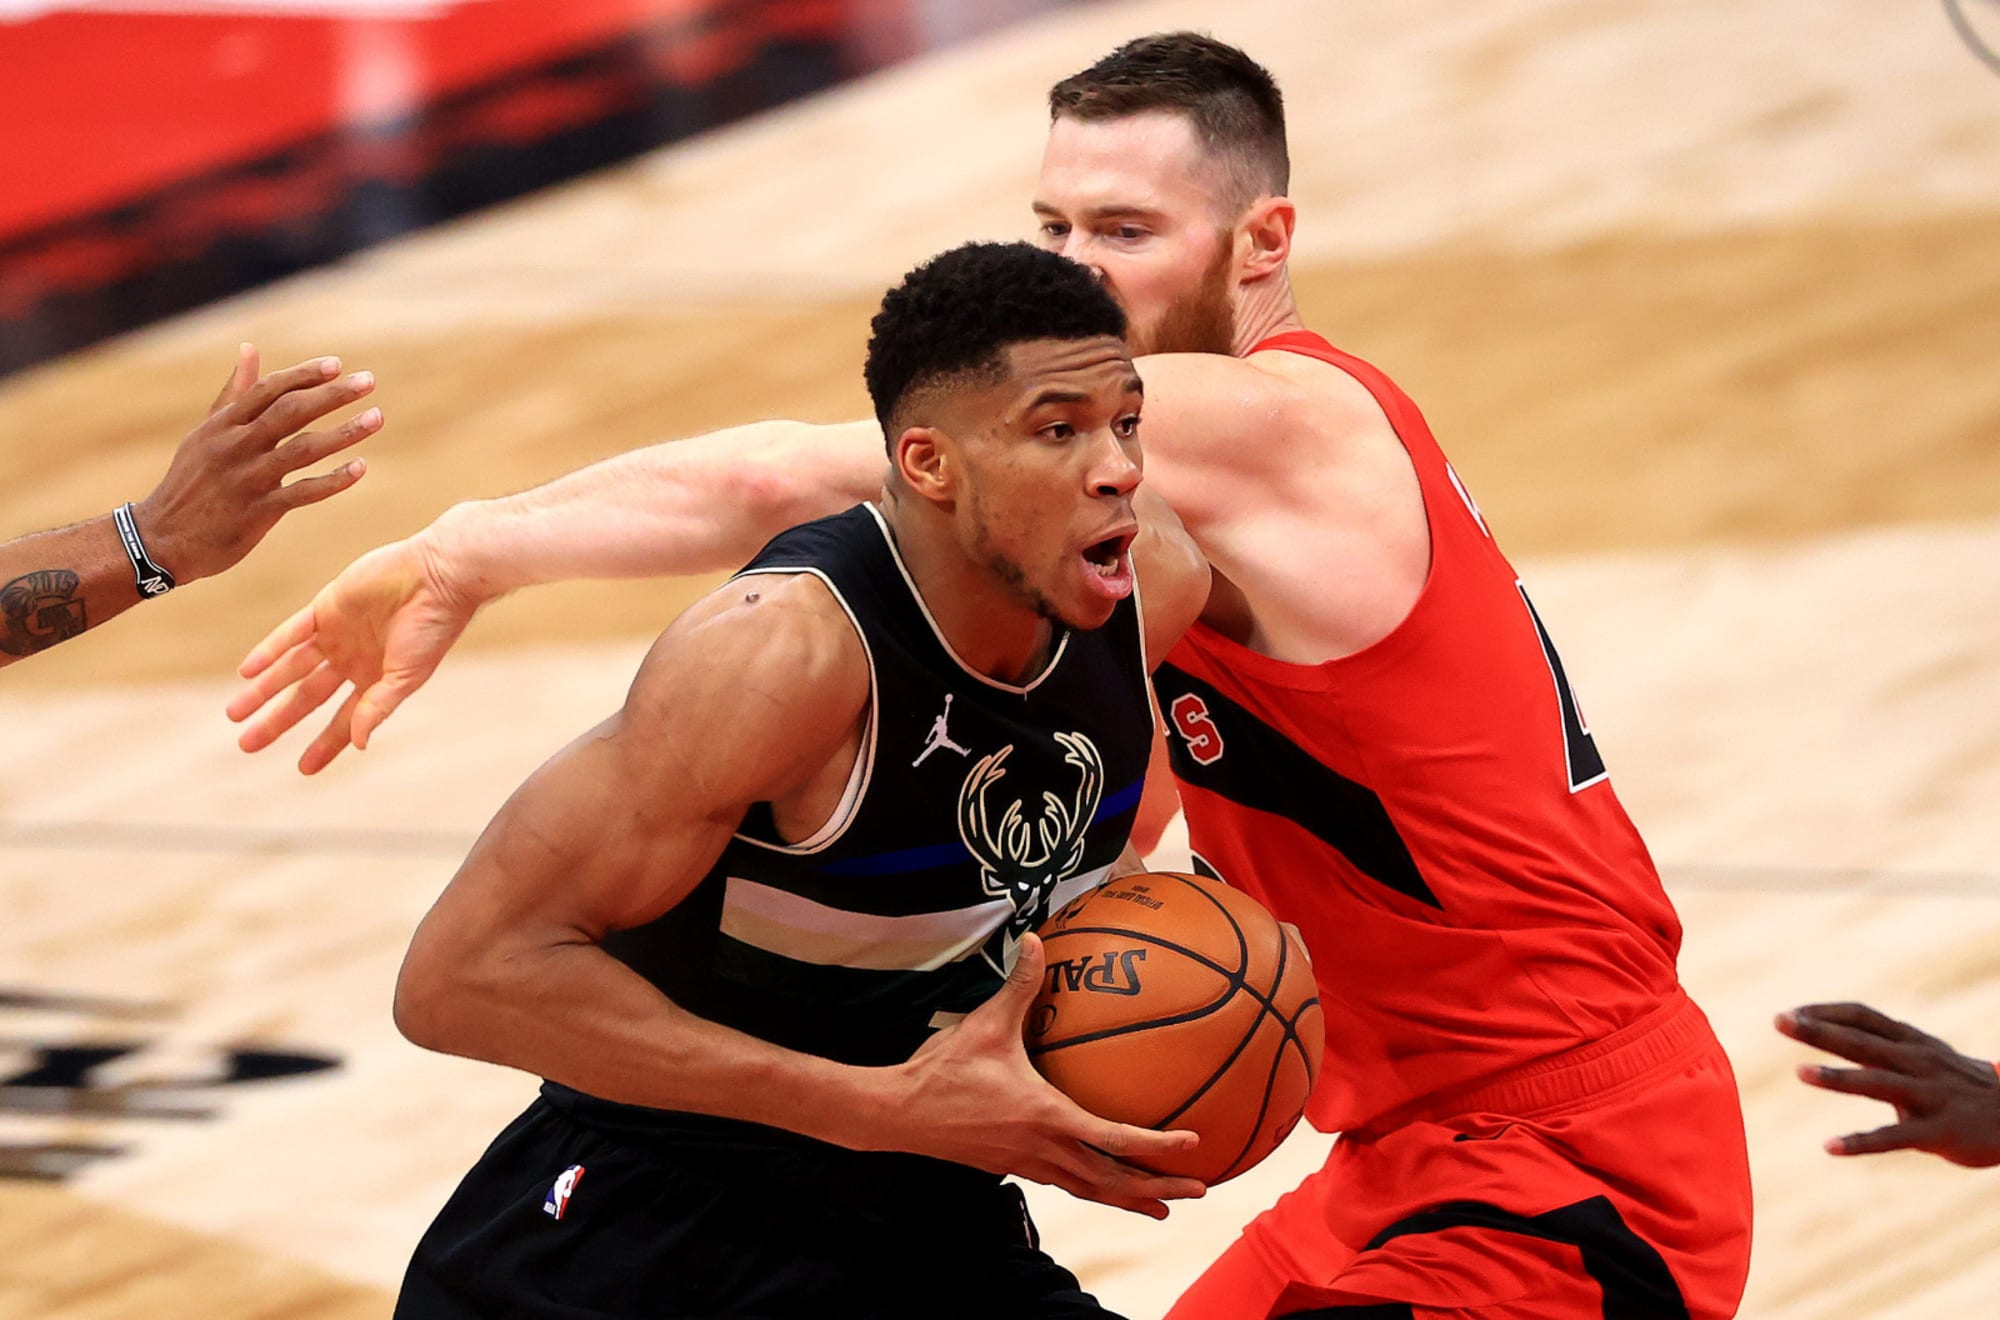 Toronto Raptors: 2 lessons the front office can take from champion Bucks